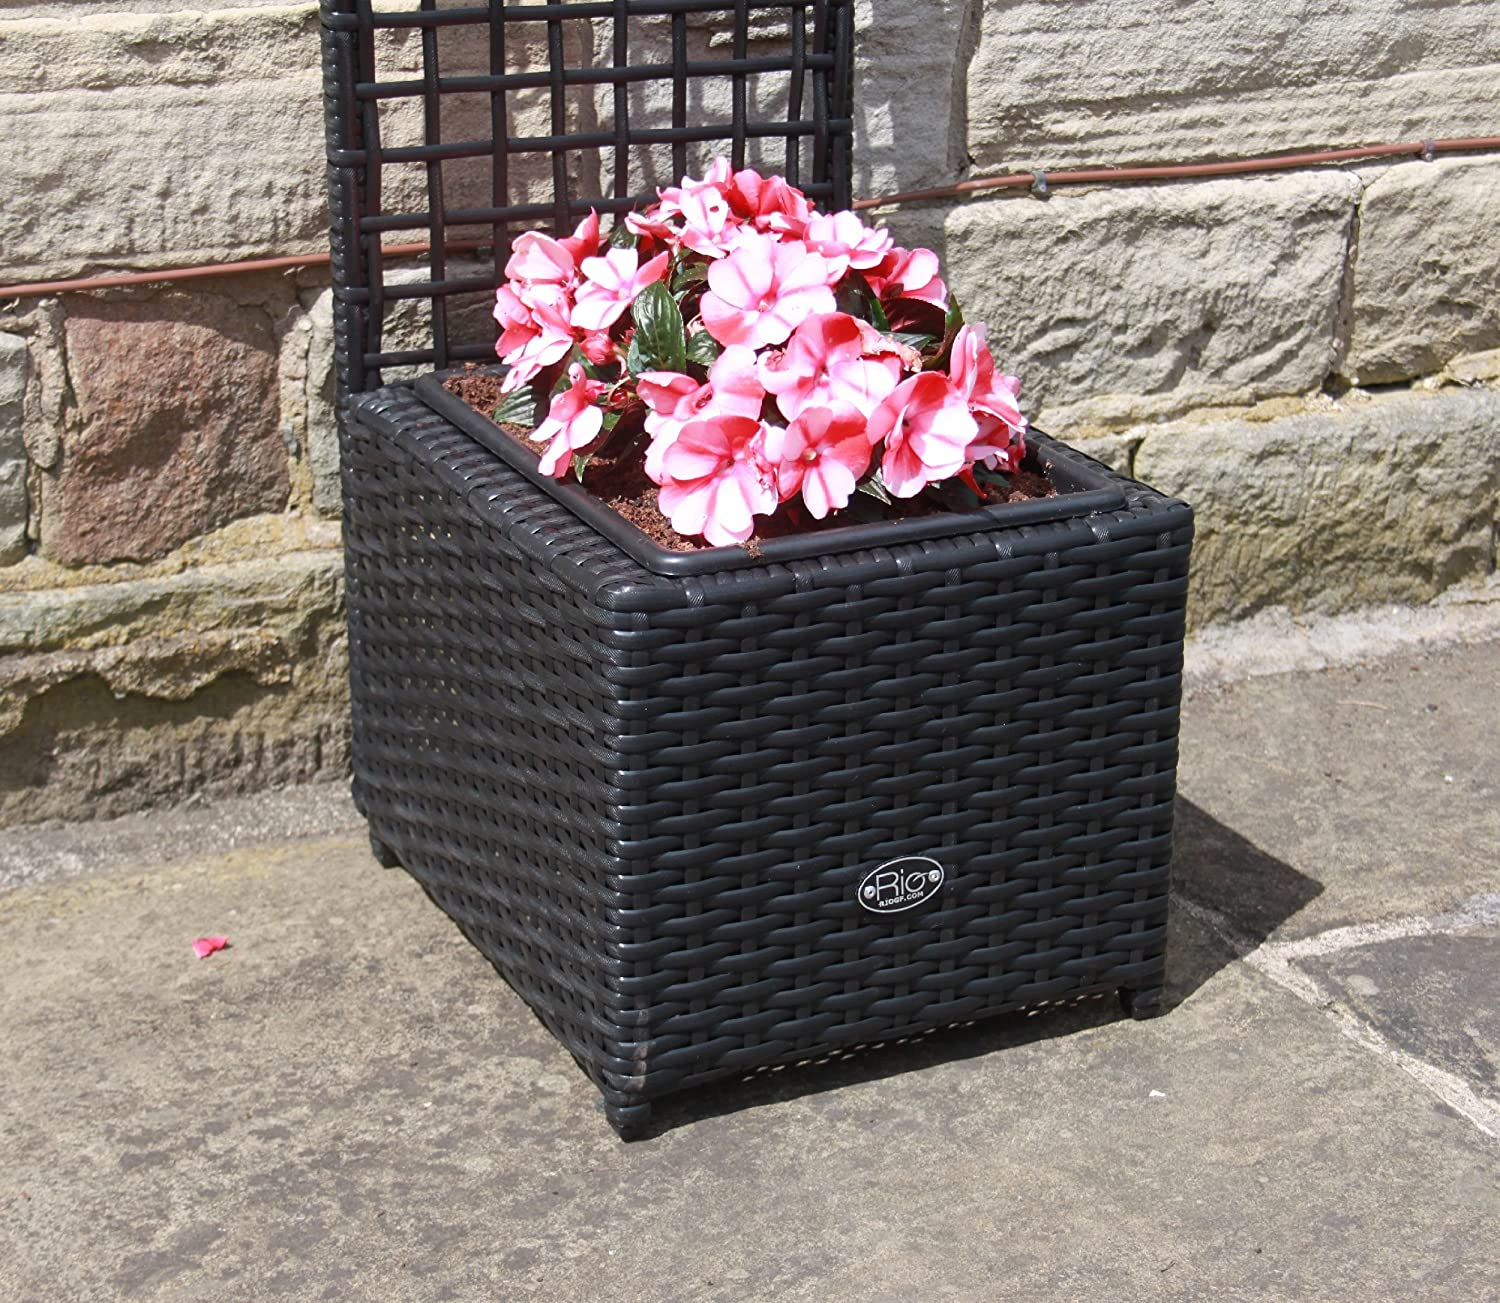 Trellises Garden & Outdoors Hand Woven PE Rattan Trellis Planter Flower Pots Outdoor Garden Furniture in Brown